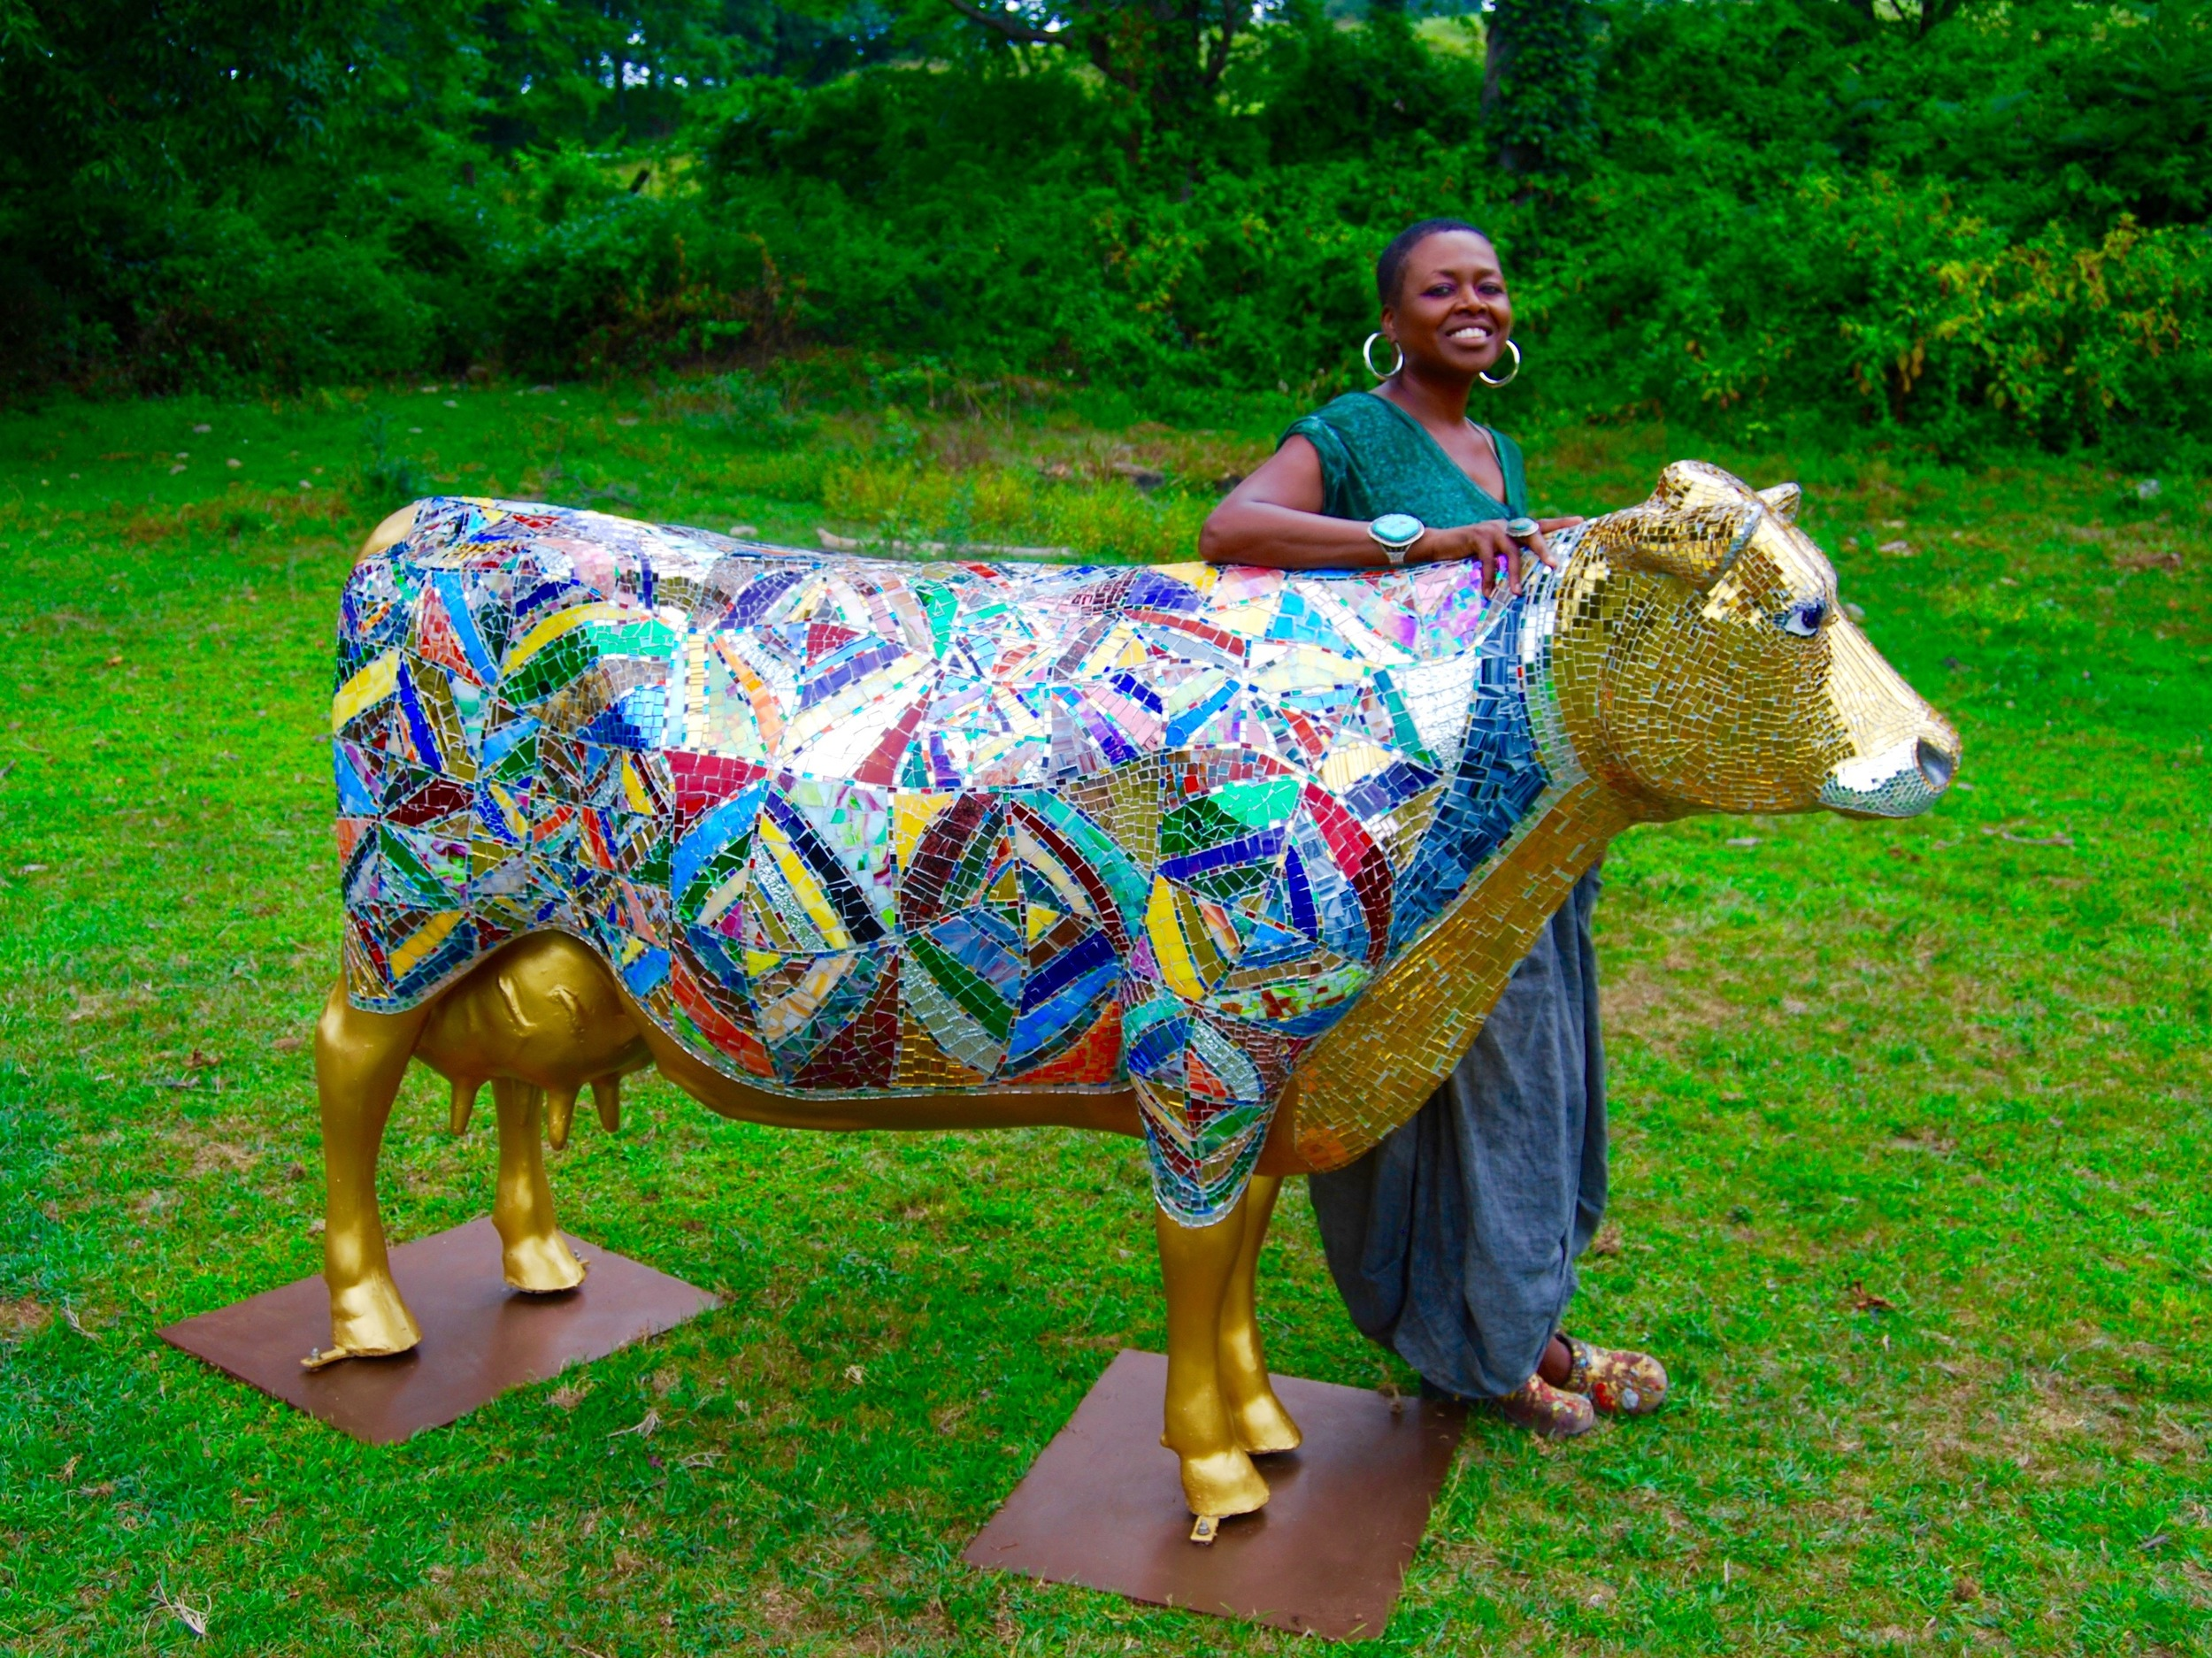 HOLY COW MOSAIC SCULPTURE BY SHELITA BIRCHETT BENASH